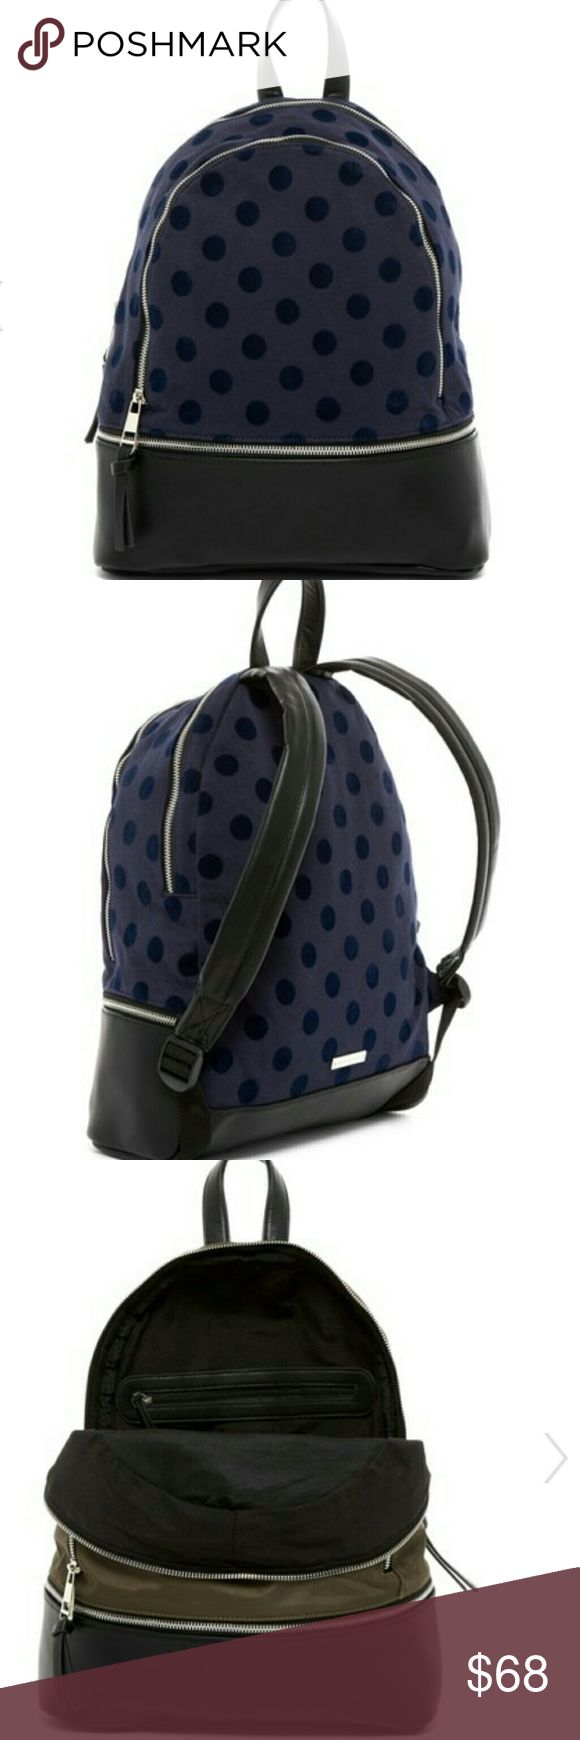 "MADDEN GIRL navy polka dot backpack This adorable backpack is done in fabric and faux leather with faux leather details. The bottom zipper is only for decoration. However, the bag does feature two compartments. Like the olive bag posted prior, it features adjustable shoulder straps and a top handle. Dimensions are: 16"" high, 12"" wide, 4.5"" deep with a 3"" handle drop and 6-16"" shoulder strap drop. This bag is perfect for everyday use. Madden Girl Bags Backpacks"